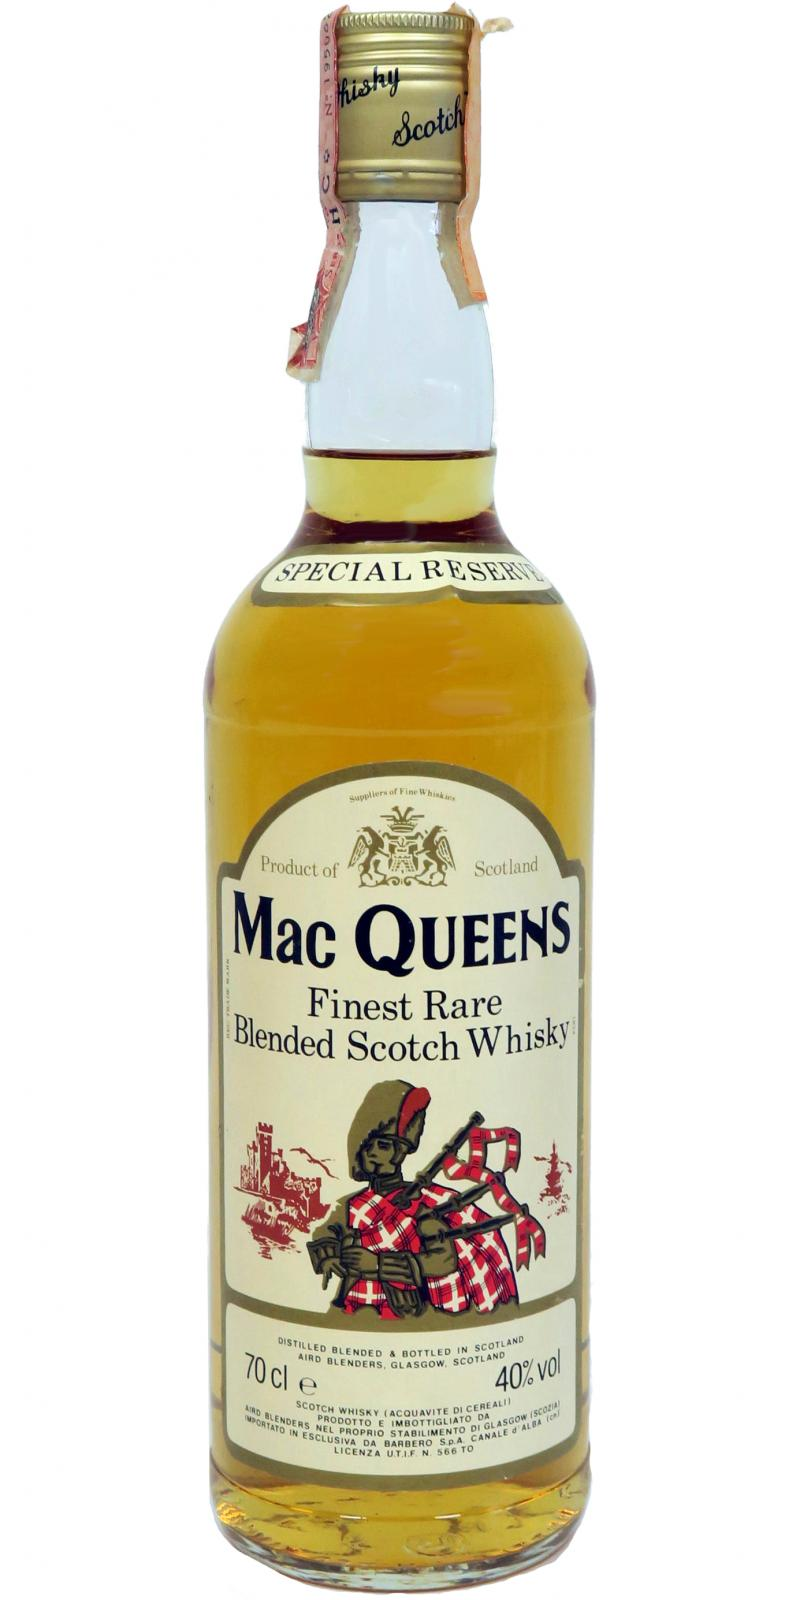 Mac Queens Finest Rare Blended Scotch Whisky